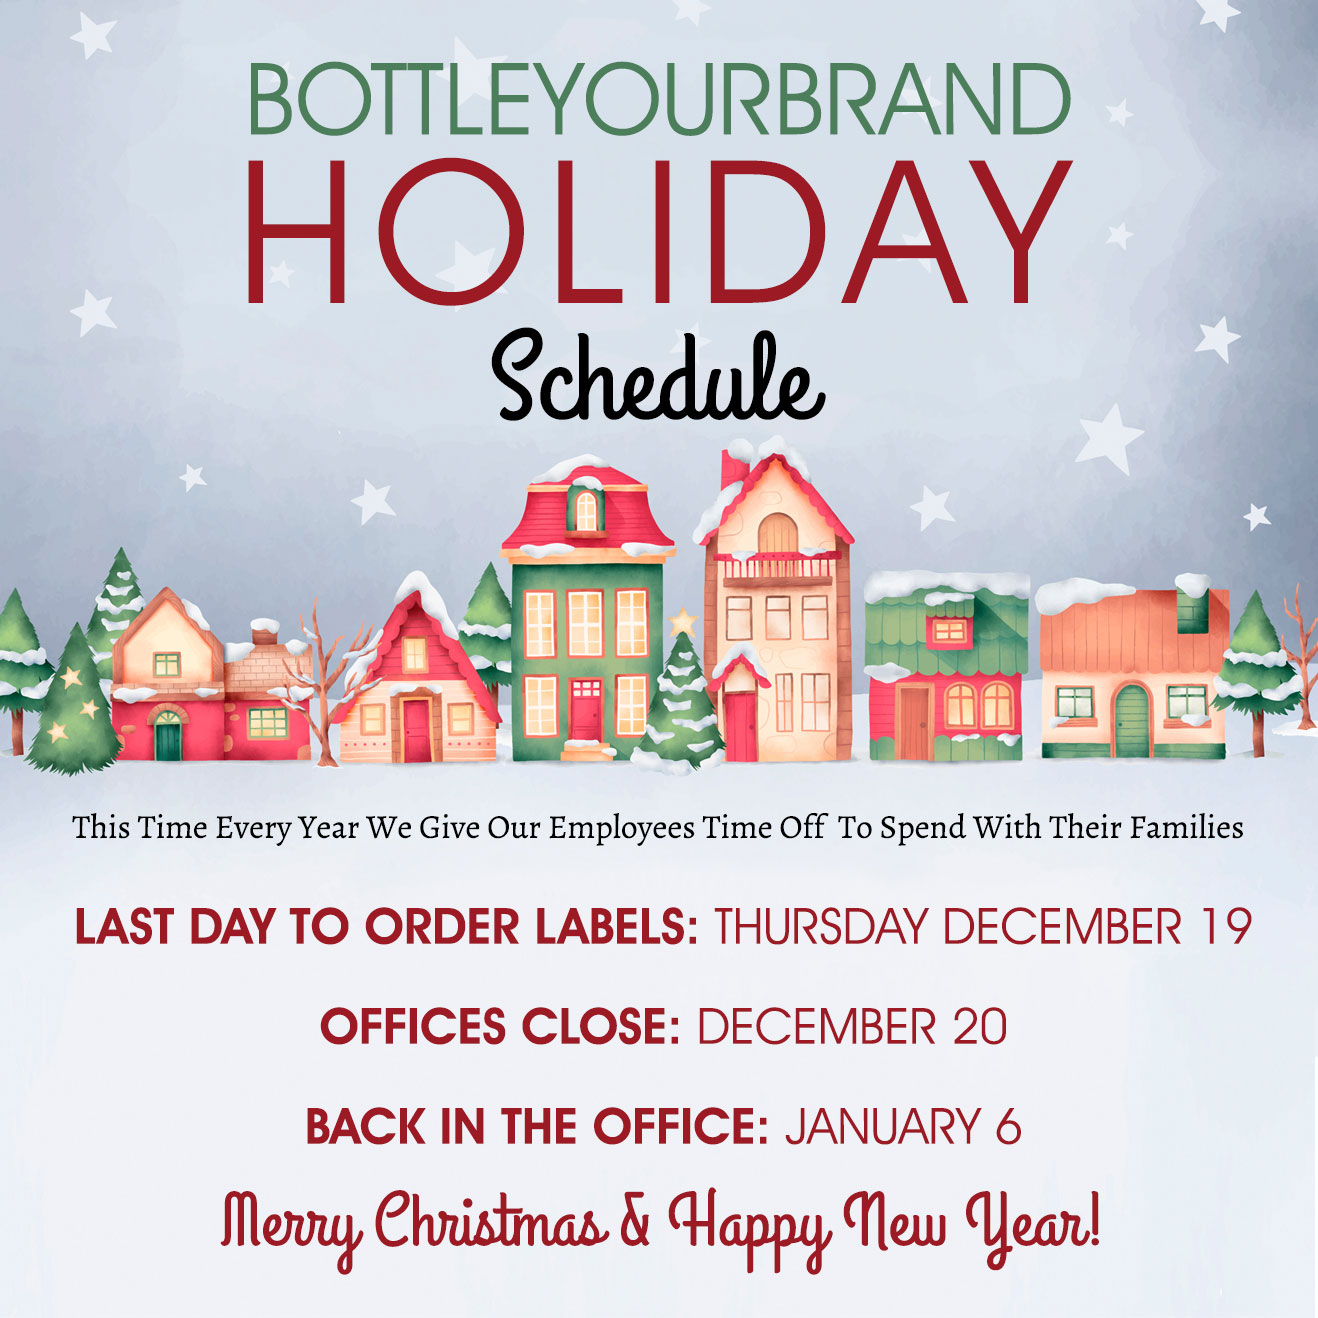 happy holidays 2019 from bottle your brand